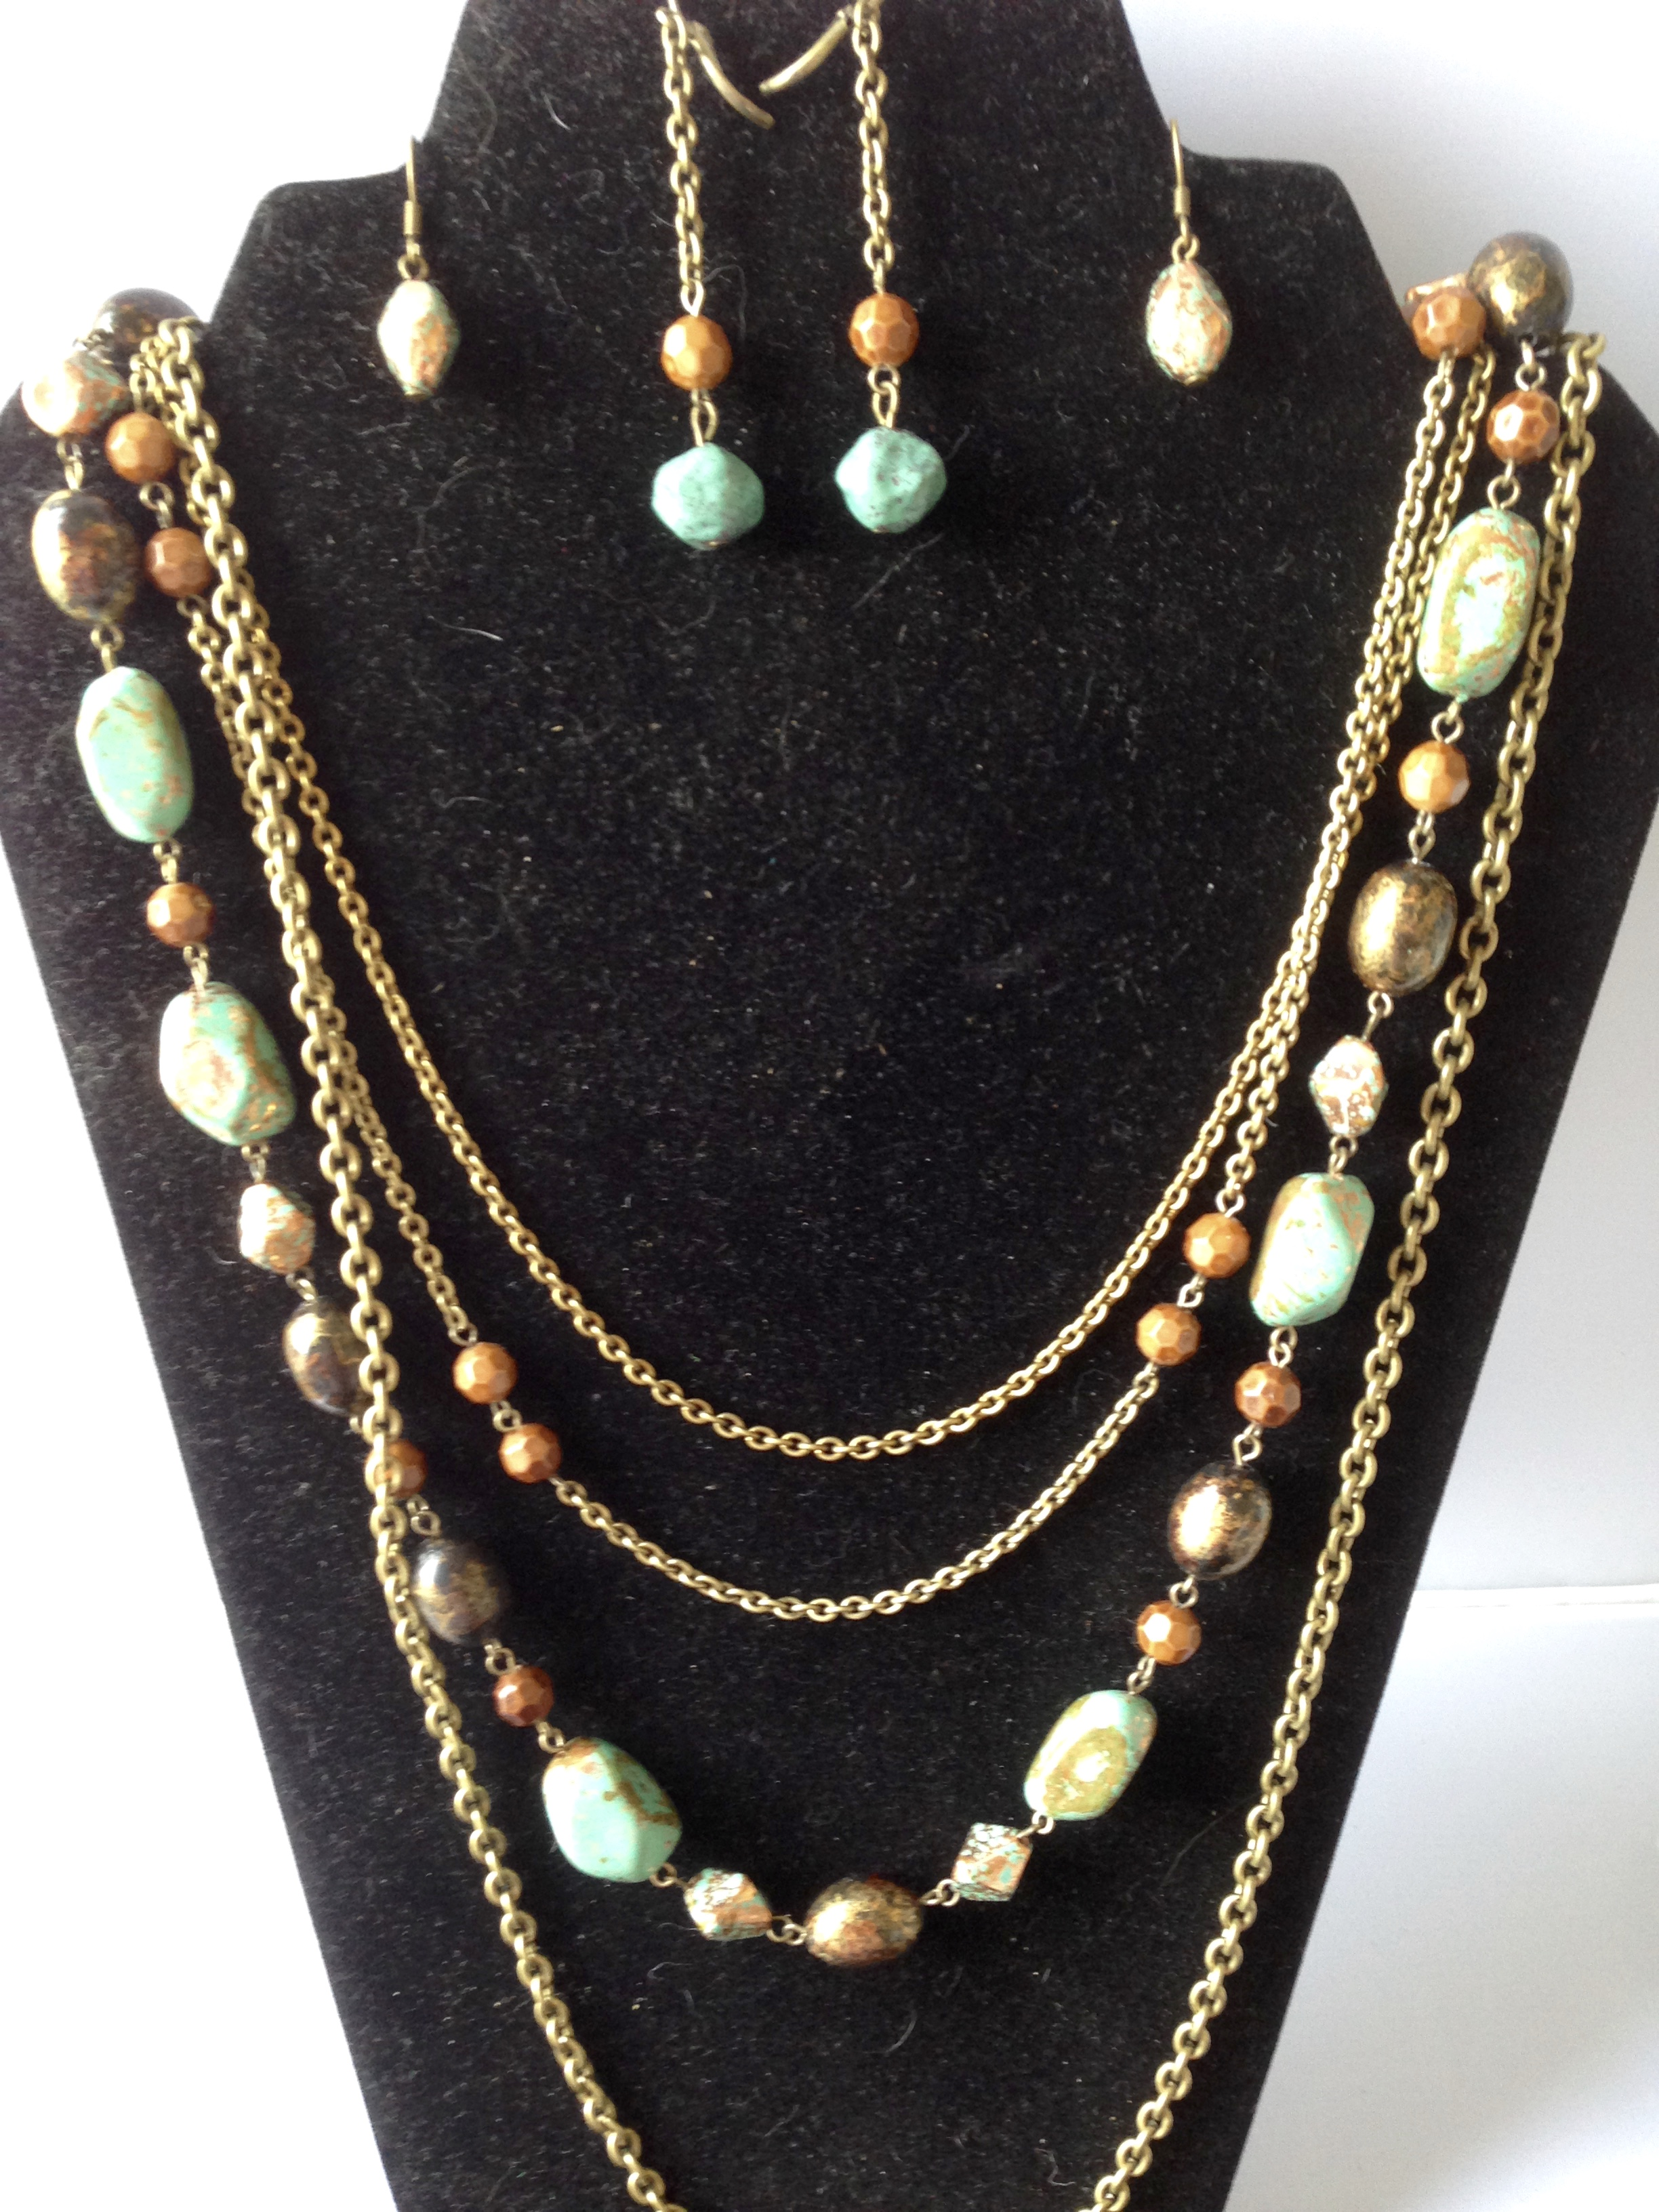 SALE: Set of 2 Pr. Earrings and Multi Chain Necklace